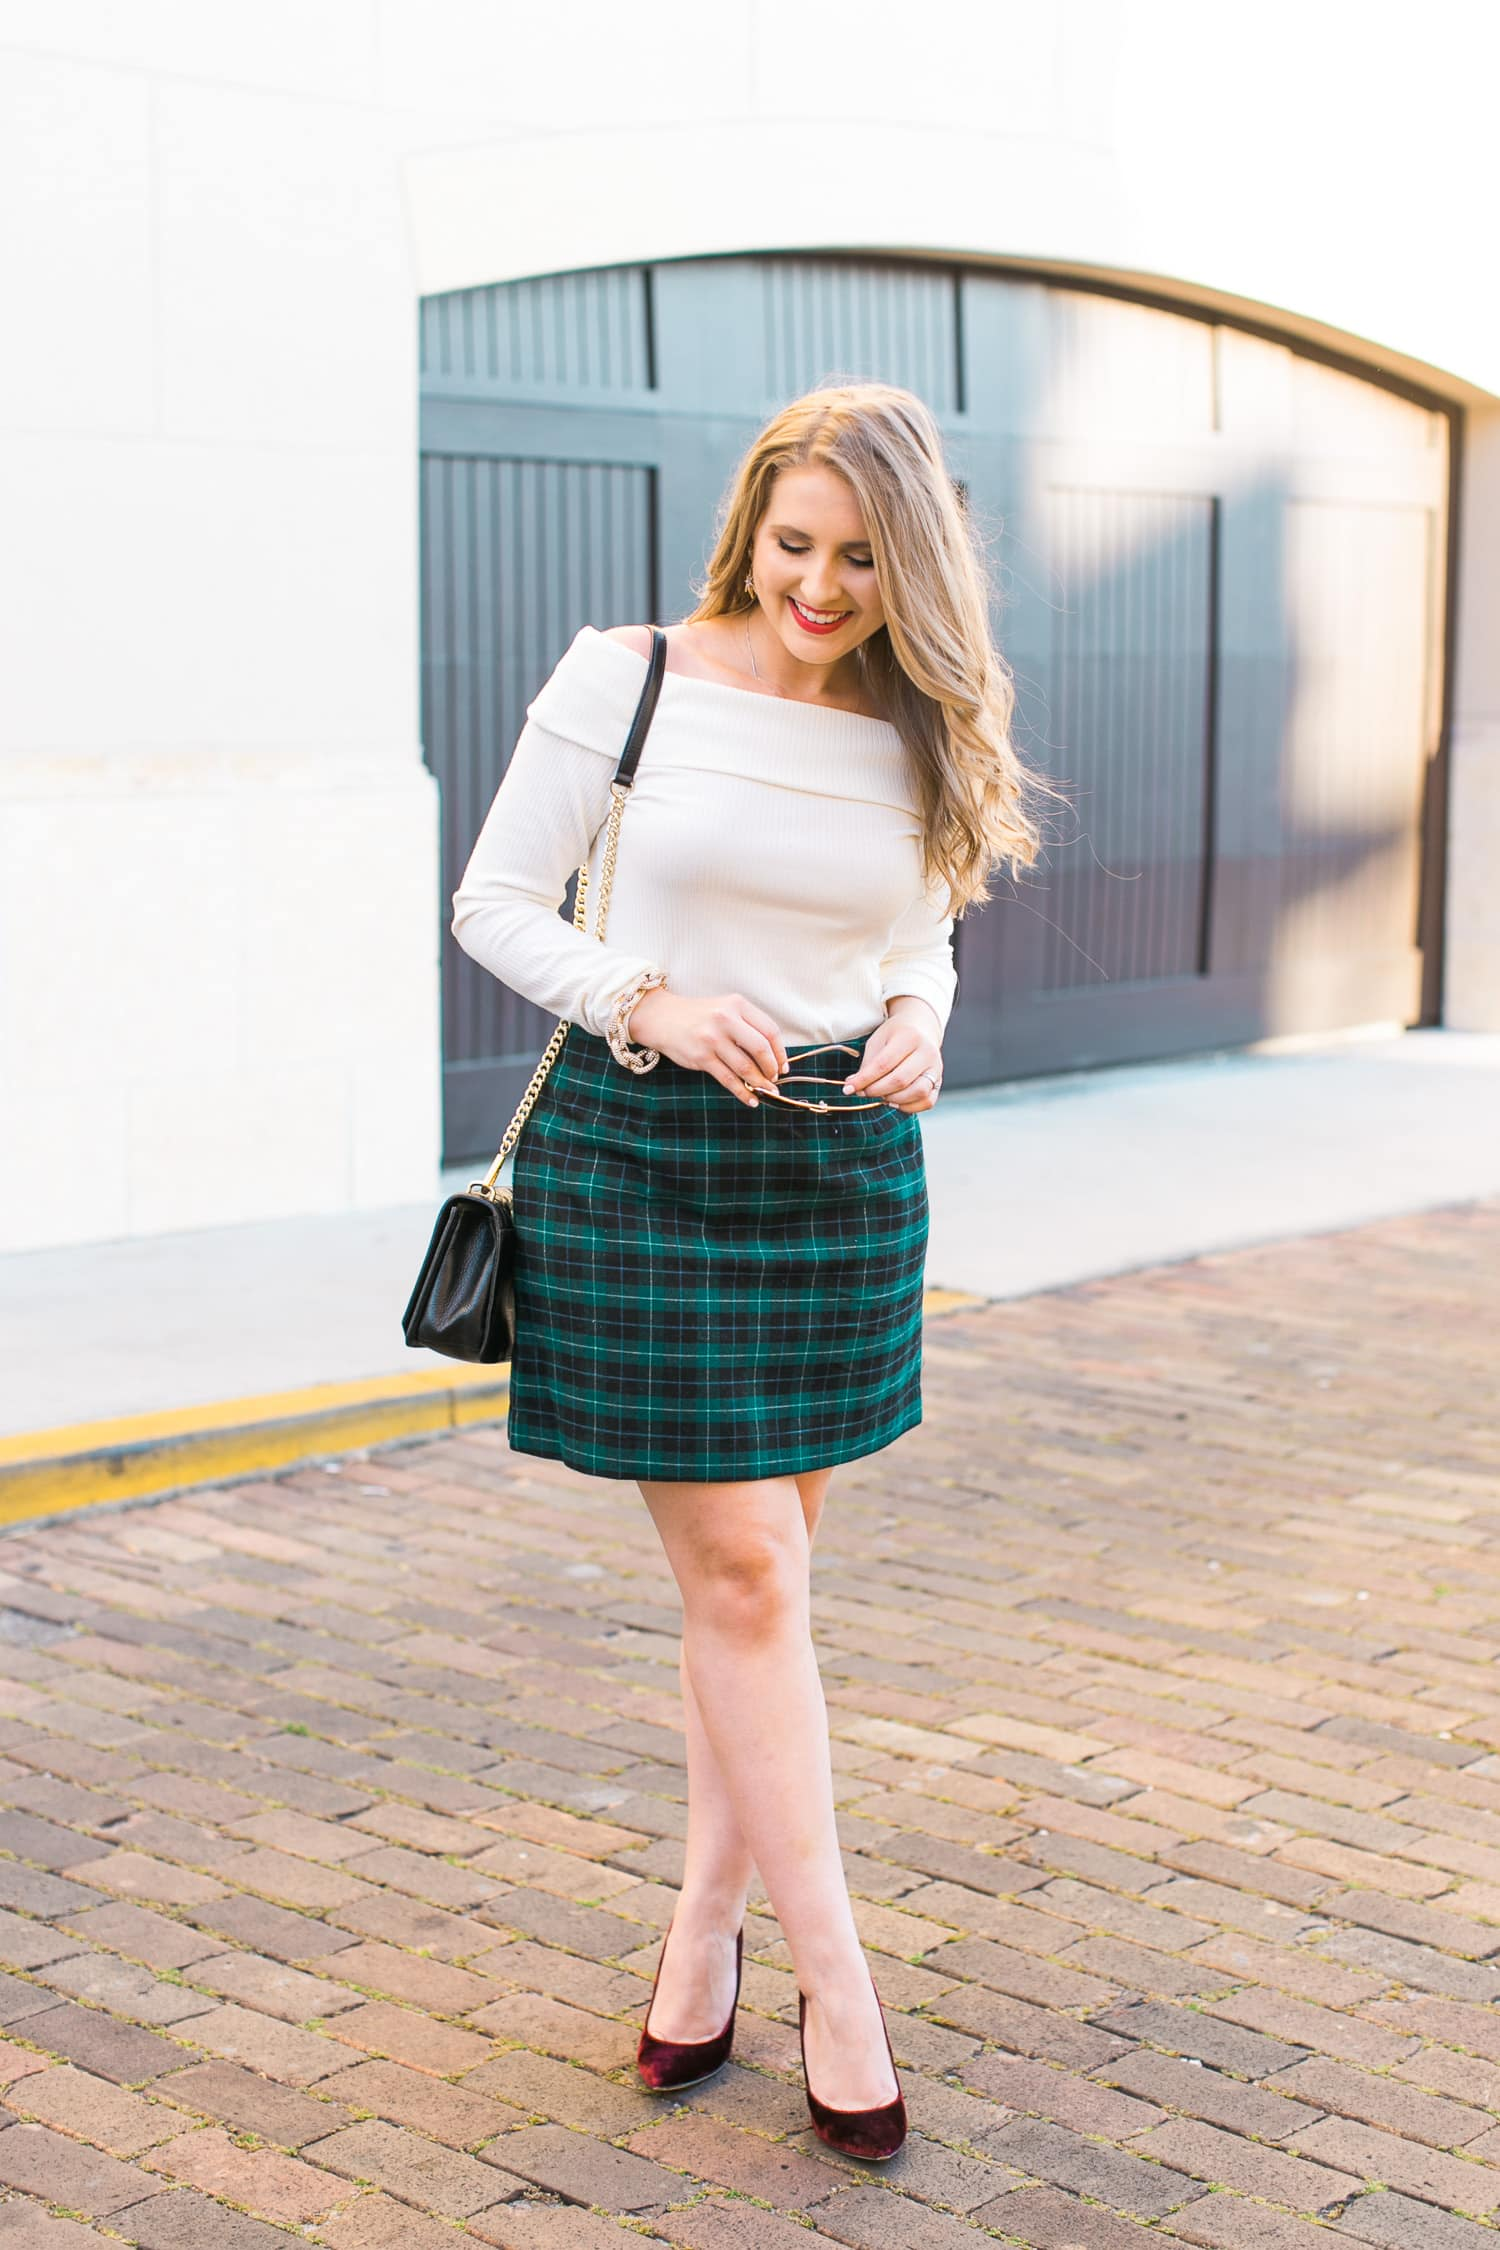 preppy-christmas-party-outfit-idea-plaid-skirt-off-shoulder-sweater-velvet-pumps-foster-grant-aviator-sunglasses-033